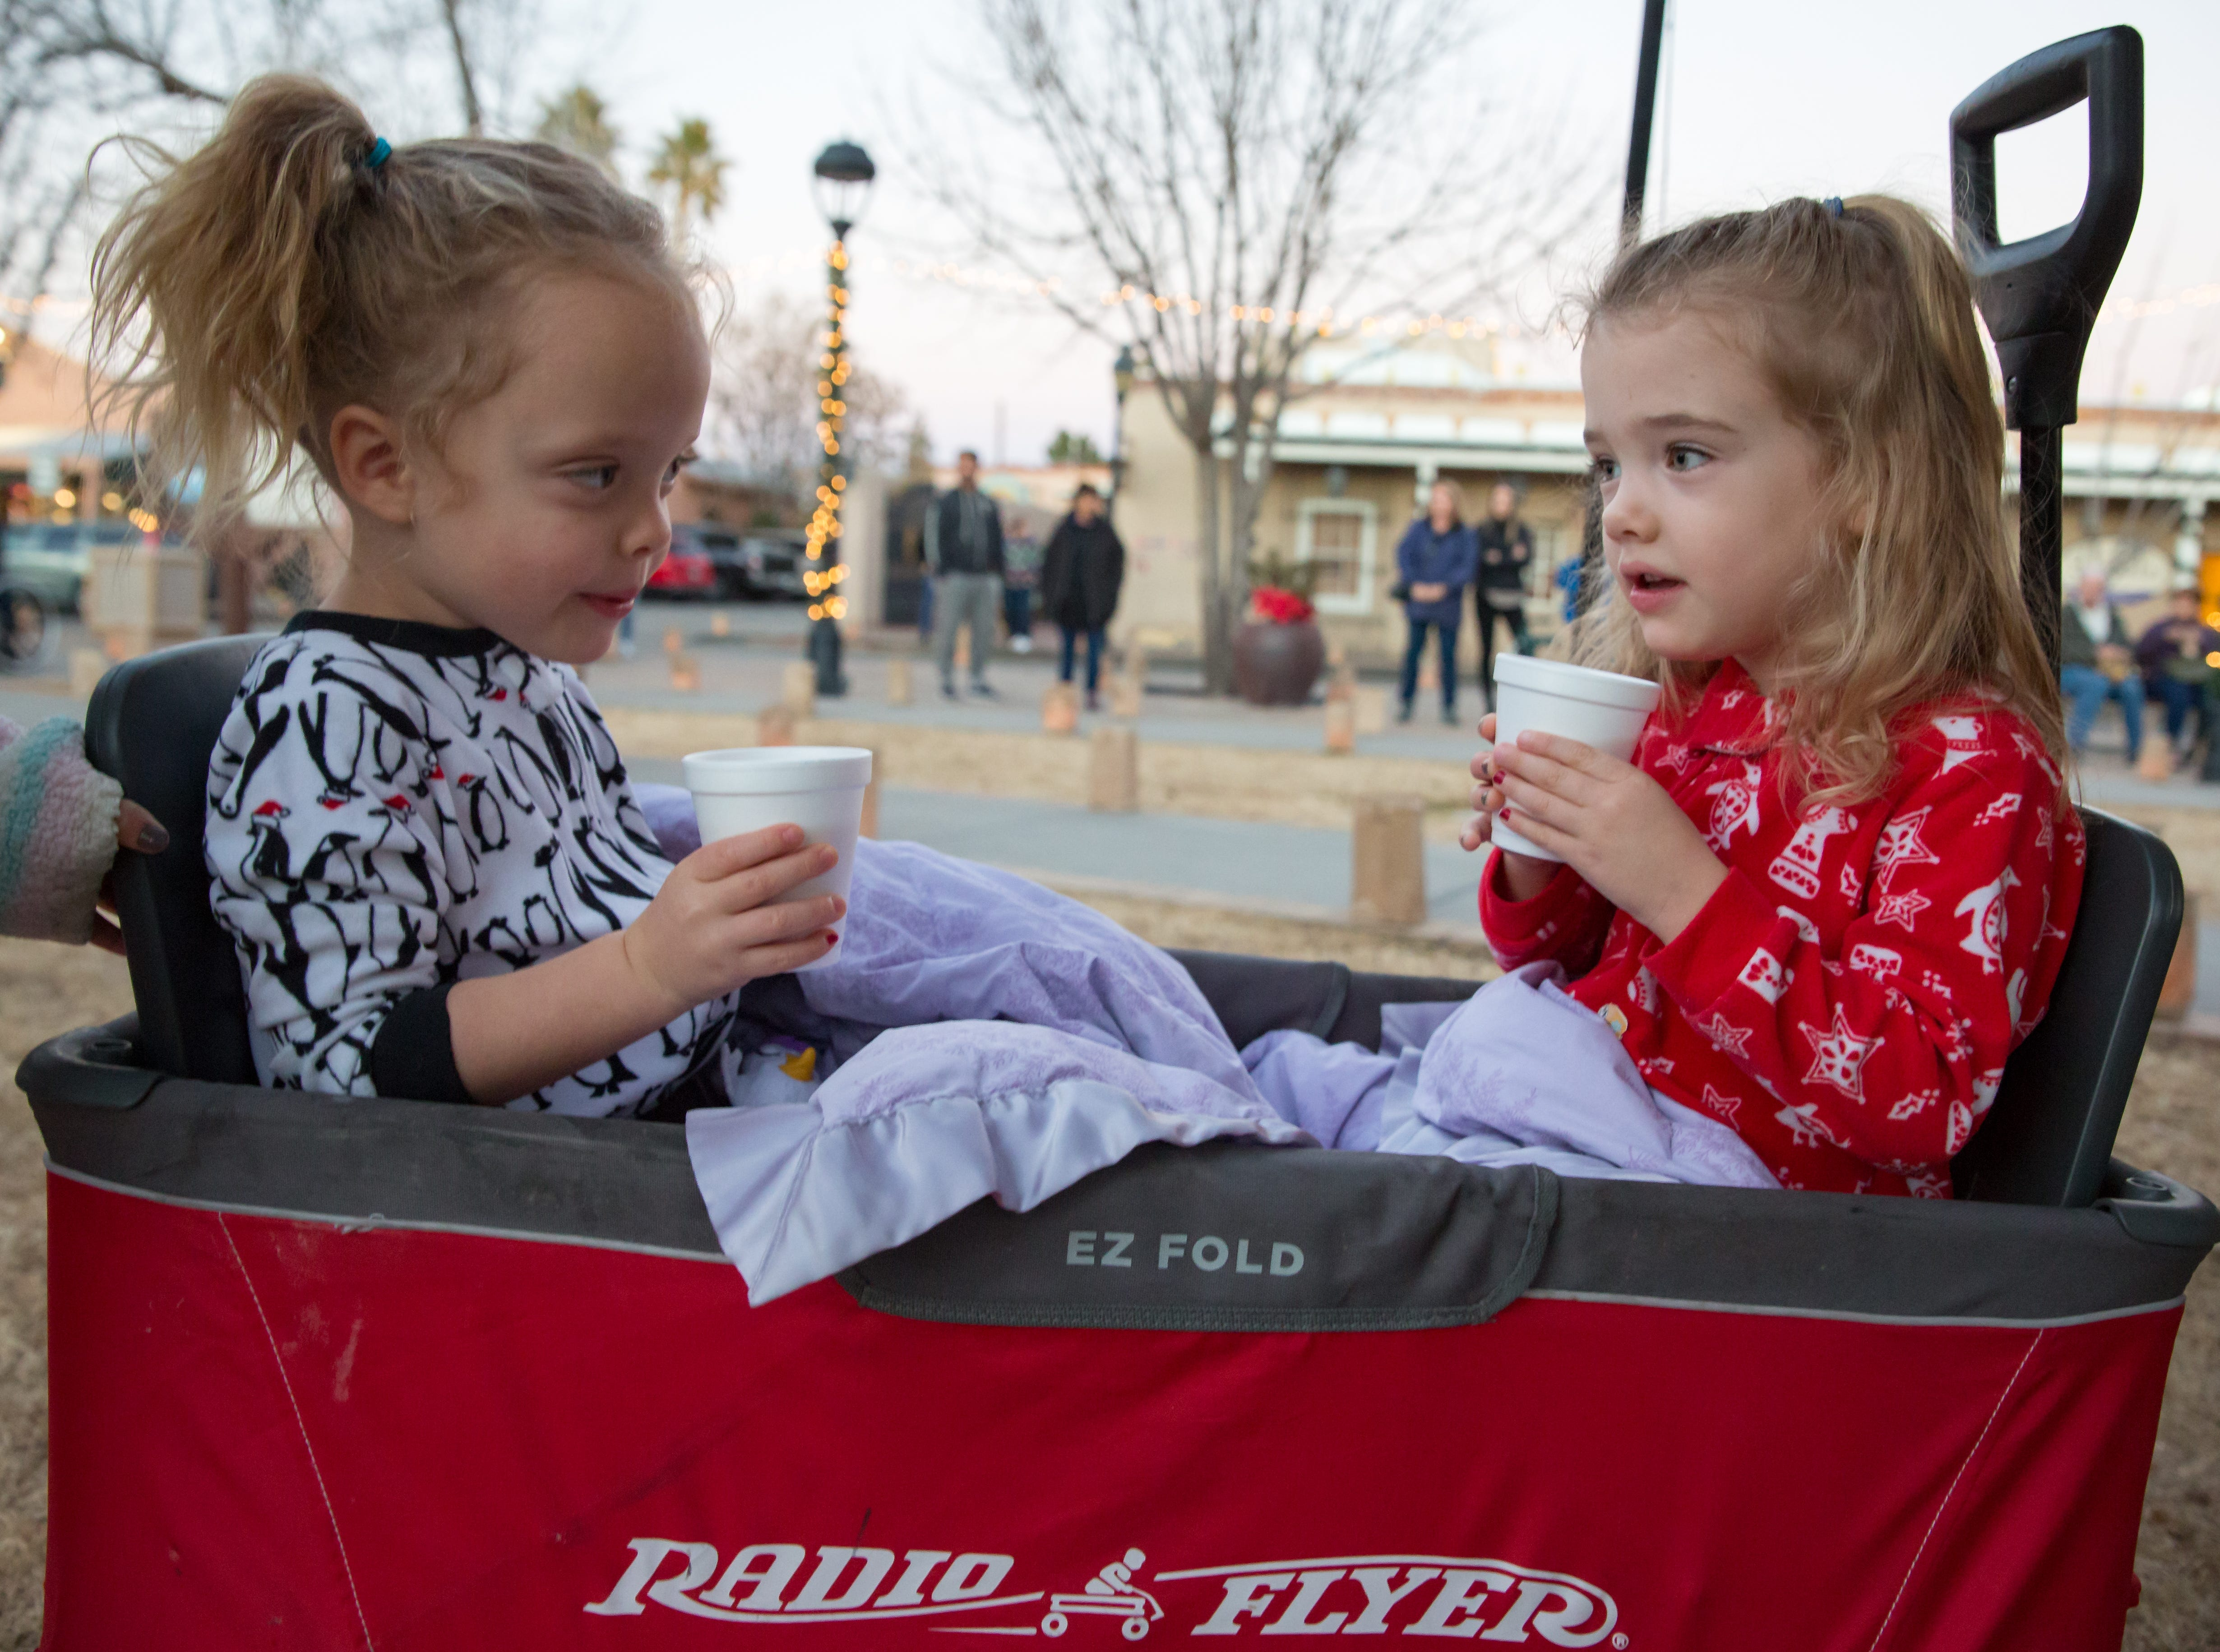 Aurora Perez, 3, right, and Zelda Perez, 3, left, drink hot cocoa at the Mesilla Plaza on Christmas Eve, Monday, Dec. 24, 2018. There were 6,000 luminarias lit by the historic village of Old Mesilla.